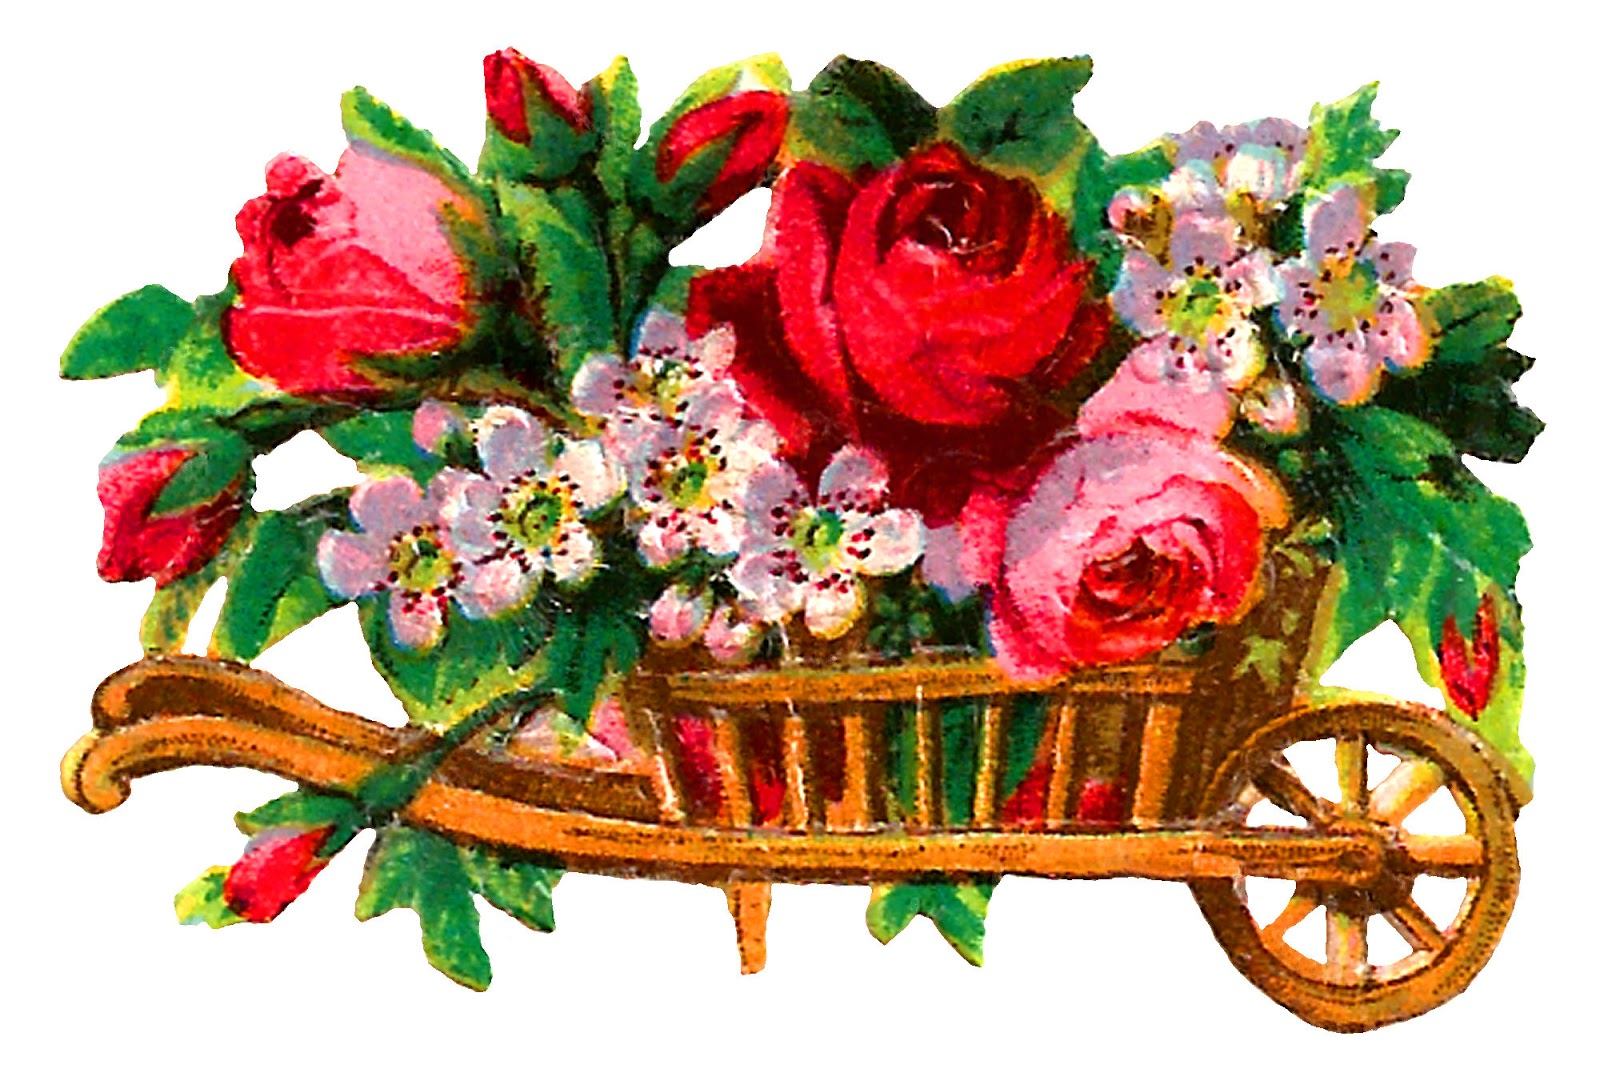 Wooden roses clipart jpg library download Antique Images: Free Rose Flower Wooden Cart Clipart Digital ... jpg library download